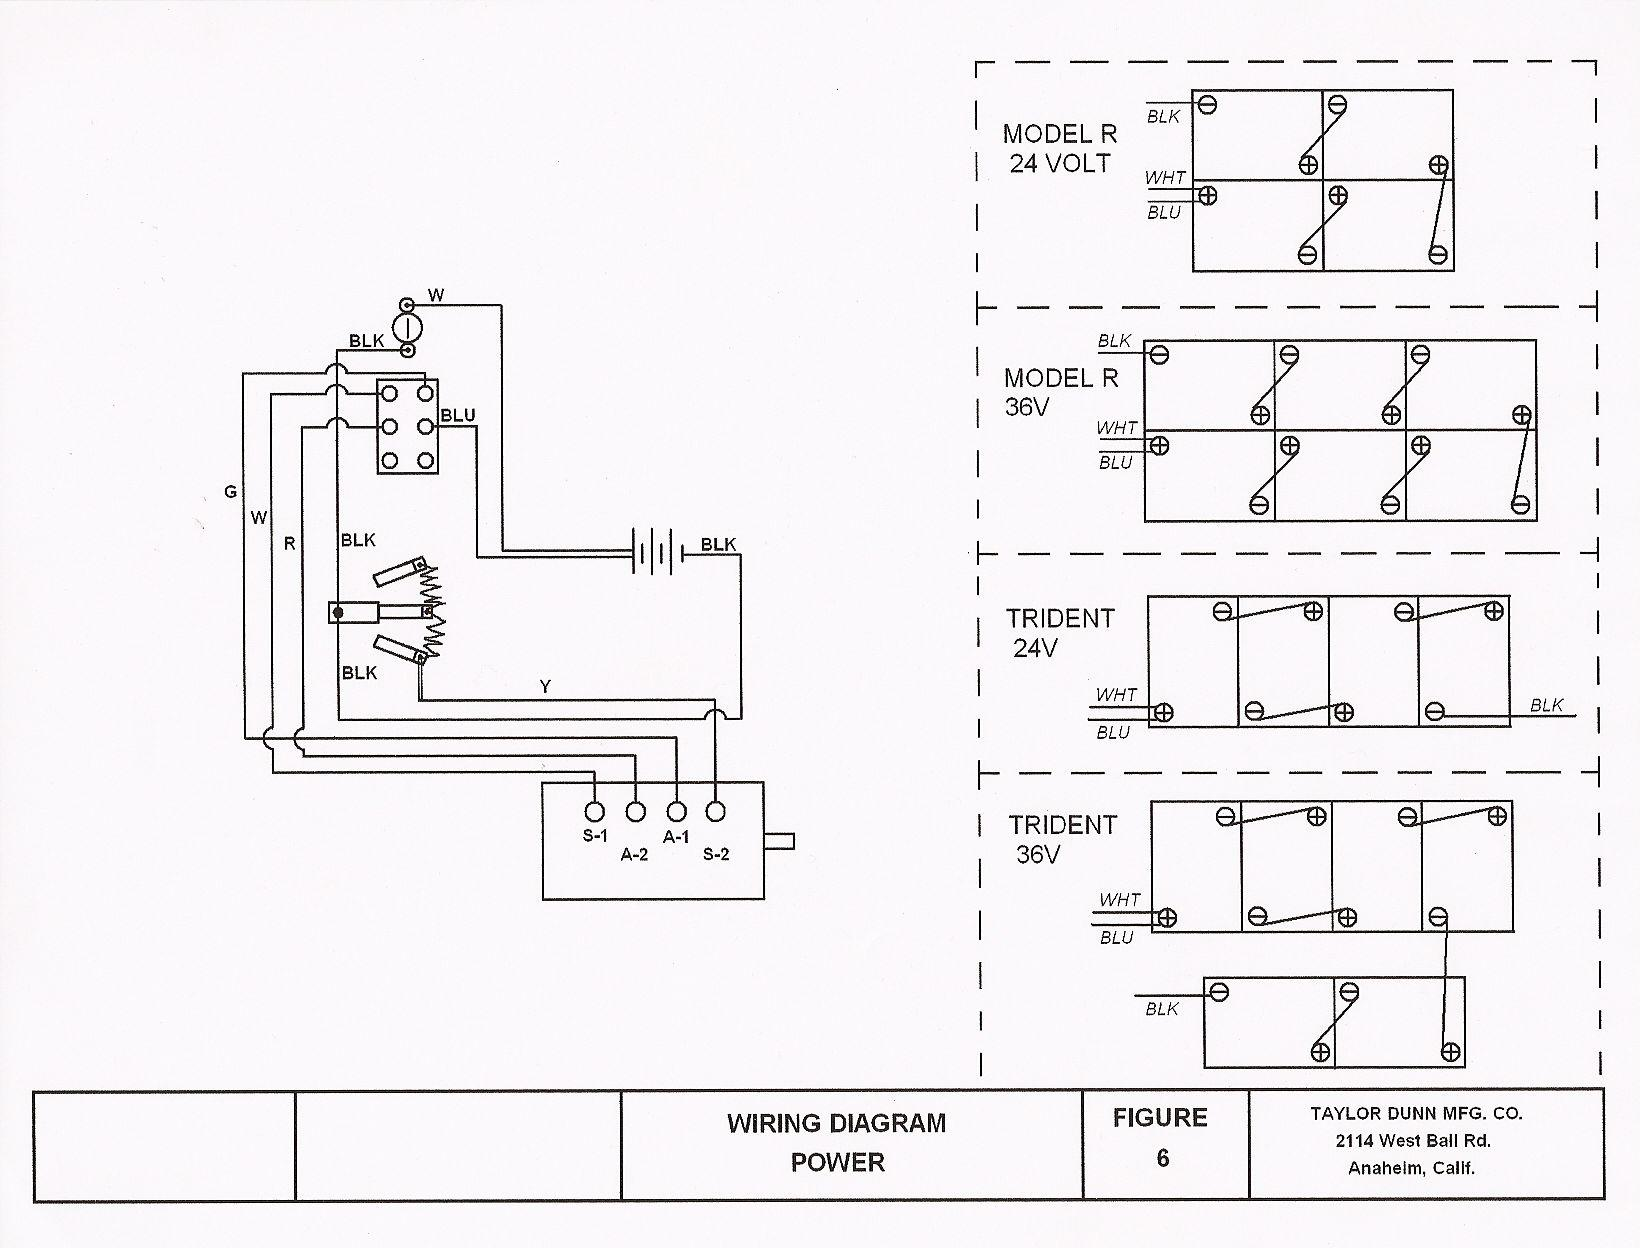 trident02 taylor dunn wiring diagram wiring diagram and schematic design taylor dunn wiring diagram at fashall.co